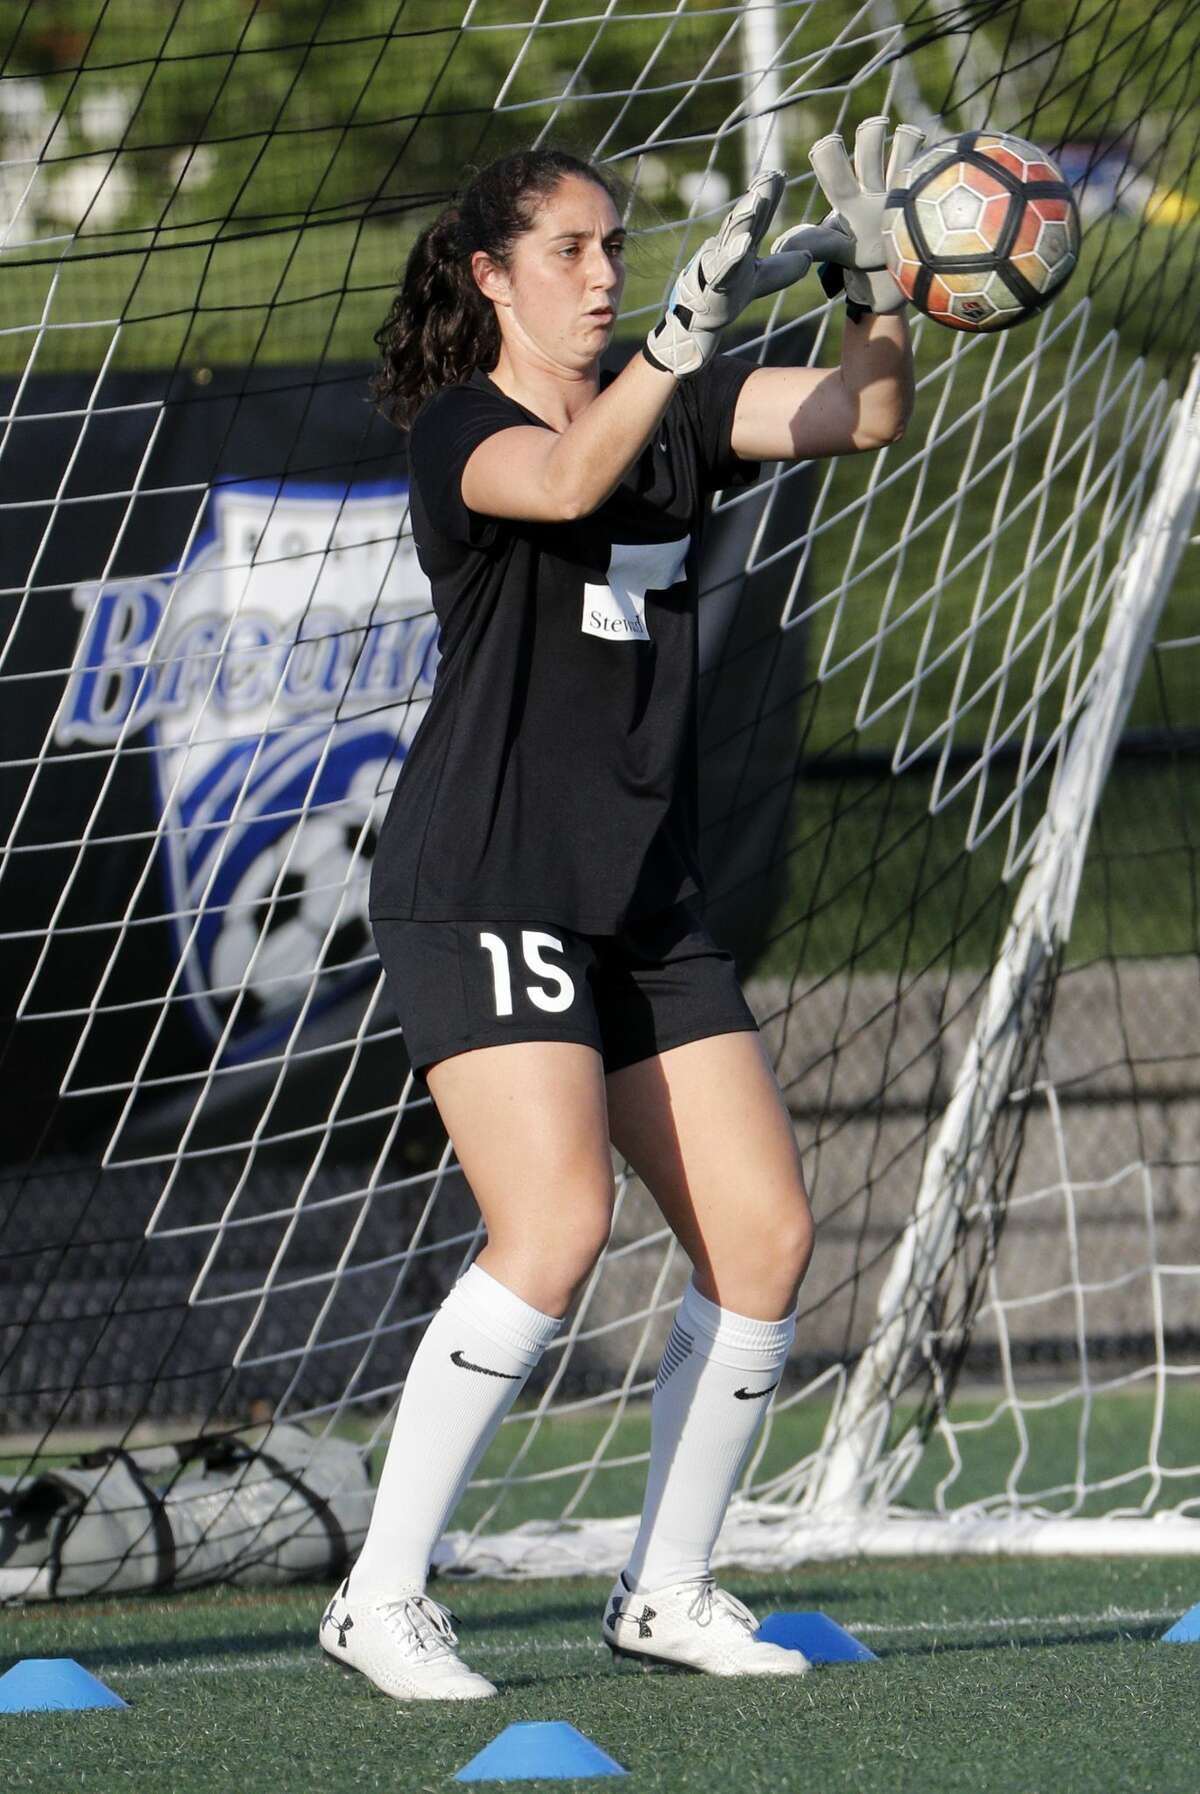 BOSTON, MA - MAY 19: Boston Breakers goalkeeper Sammy Jo Prudhomme (15) during warm up before an NWSL regular season match between the Boston Breakers and Portland Thorns FC on May 19, 2017, at Jordan Field in Boston, Massachusetts. Portland and Boston played to a 2-2 draw. (Photo by Fred Kfoury III/Icon Sportswire via Getty Images)